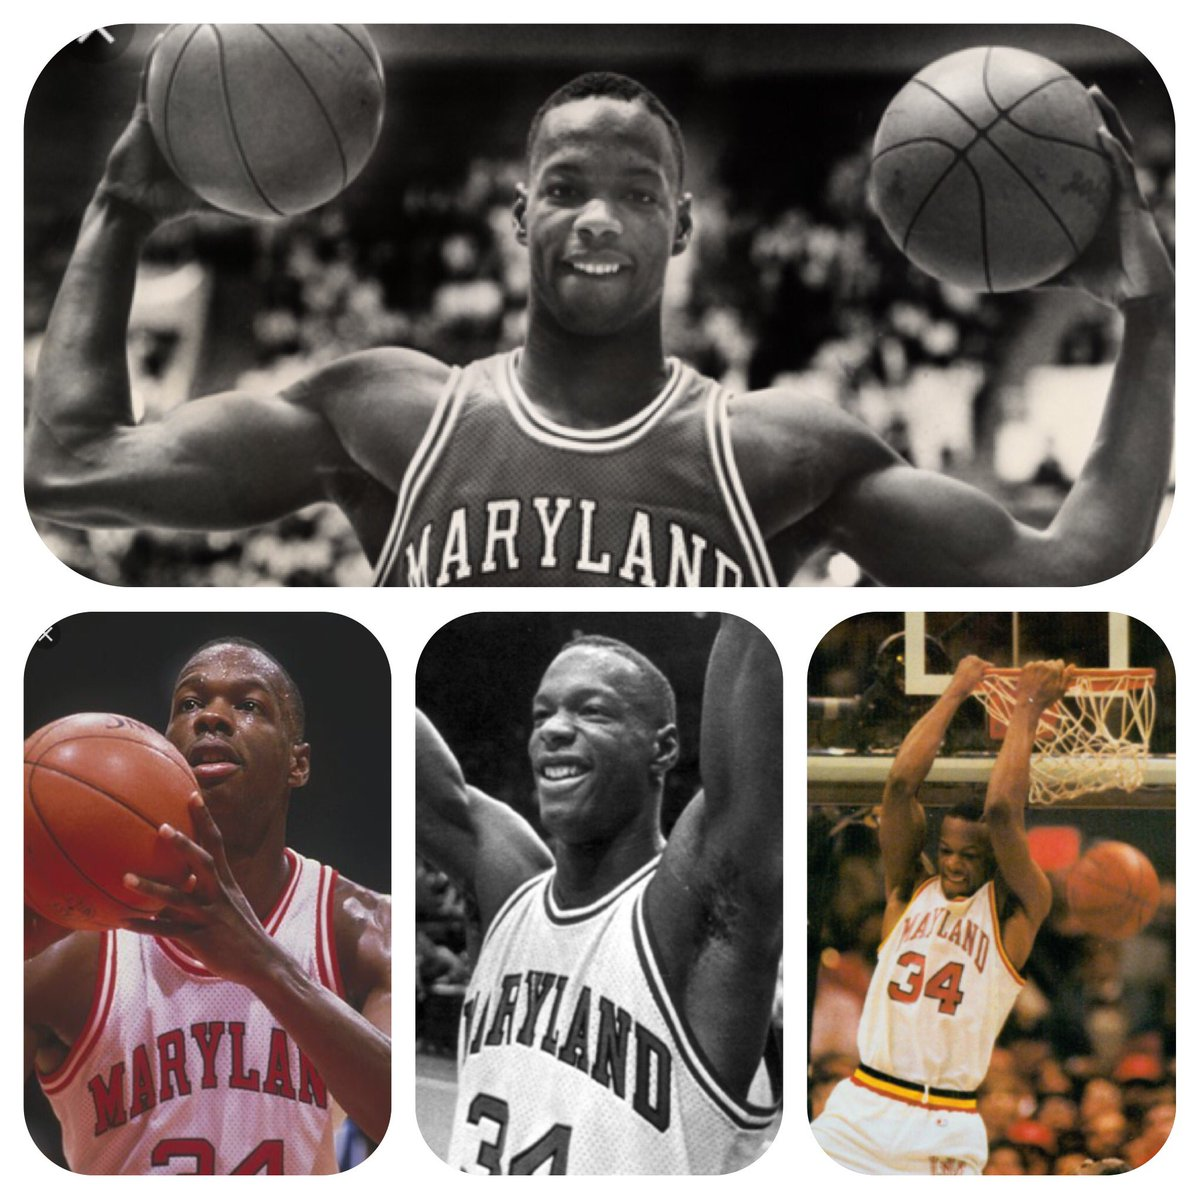 @MikeWiseguy - Great memories for Terp Nation@of the great LB. 32 Years today, still cuts to the soul.